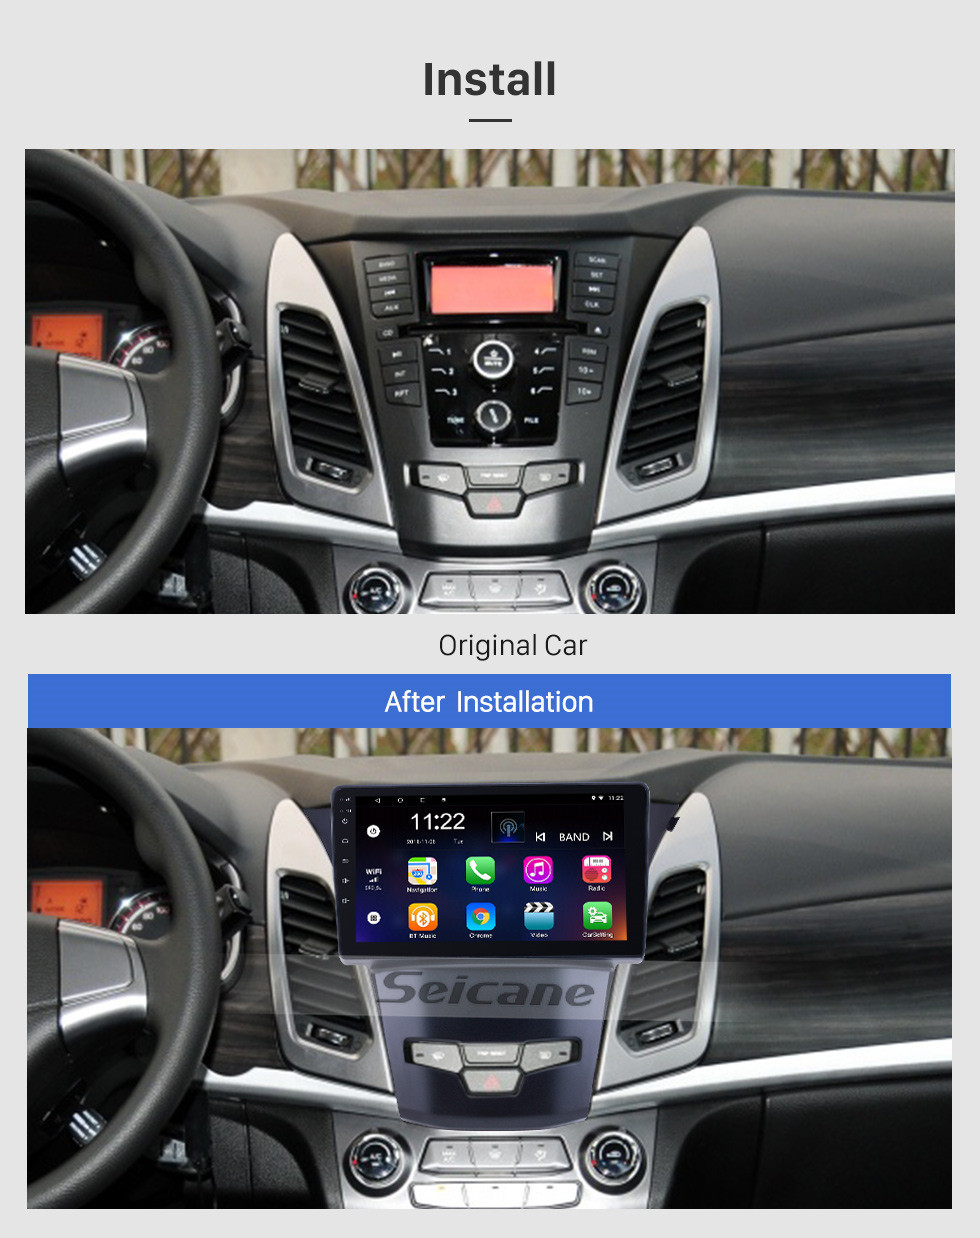 Seicane OEM 9 inch Android 10.0 for 2014 2015 2016 SsangYong Korando Radio Bluetooth HD Touchscreen GPS Navigation support Carplay DAB+ OBD2